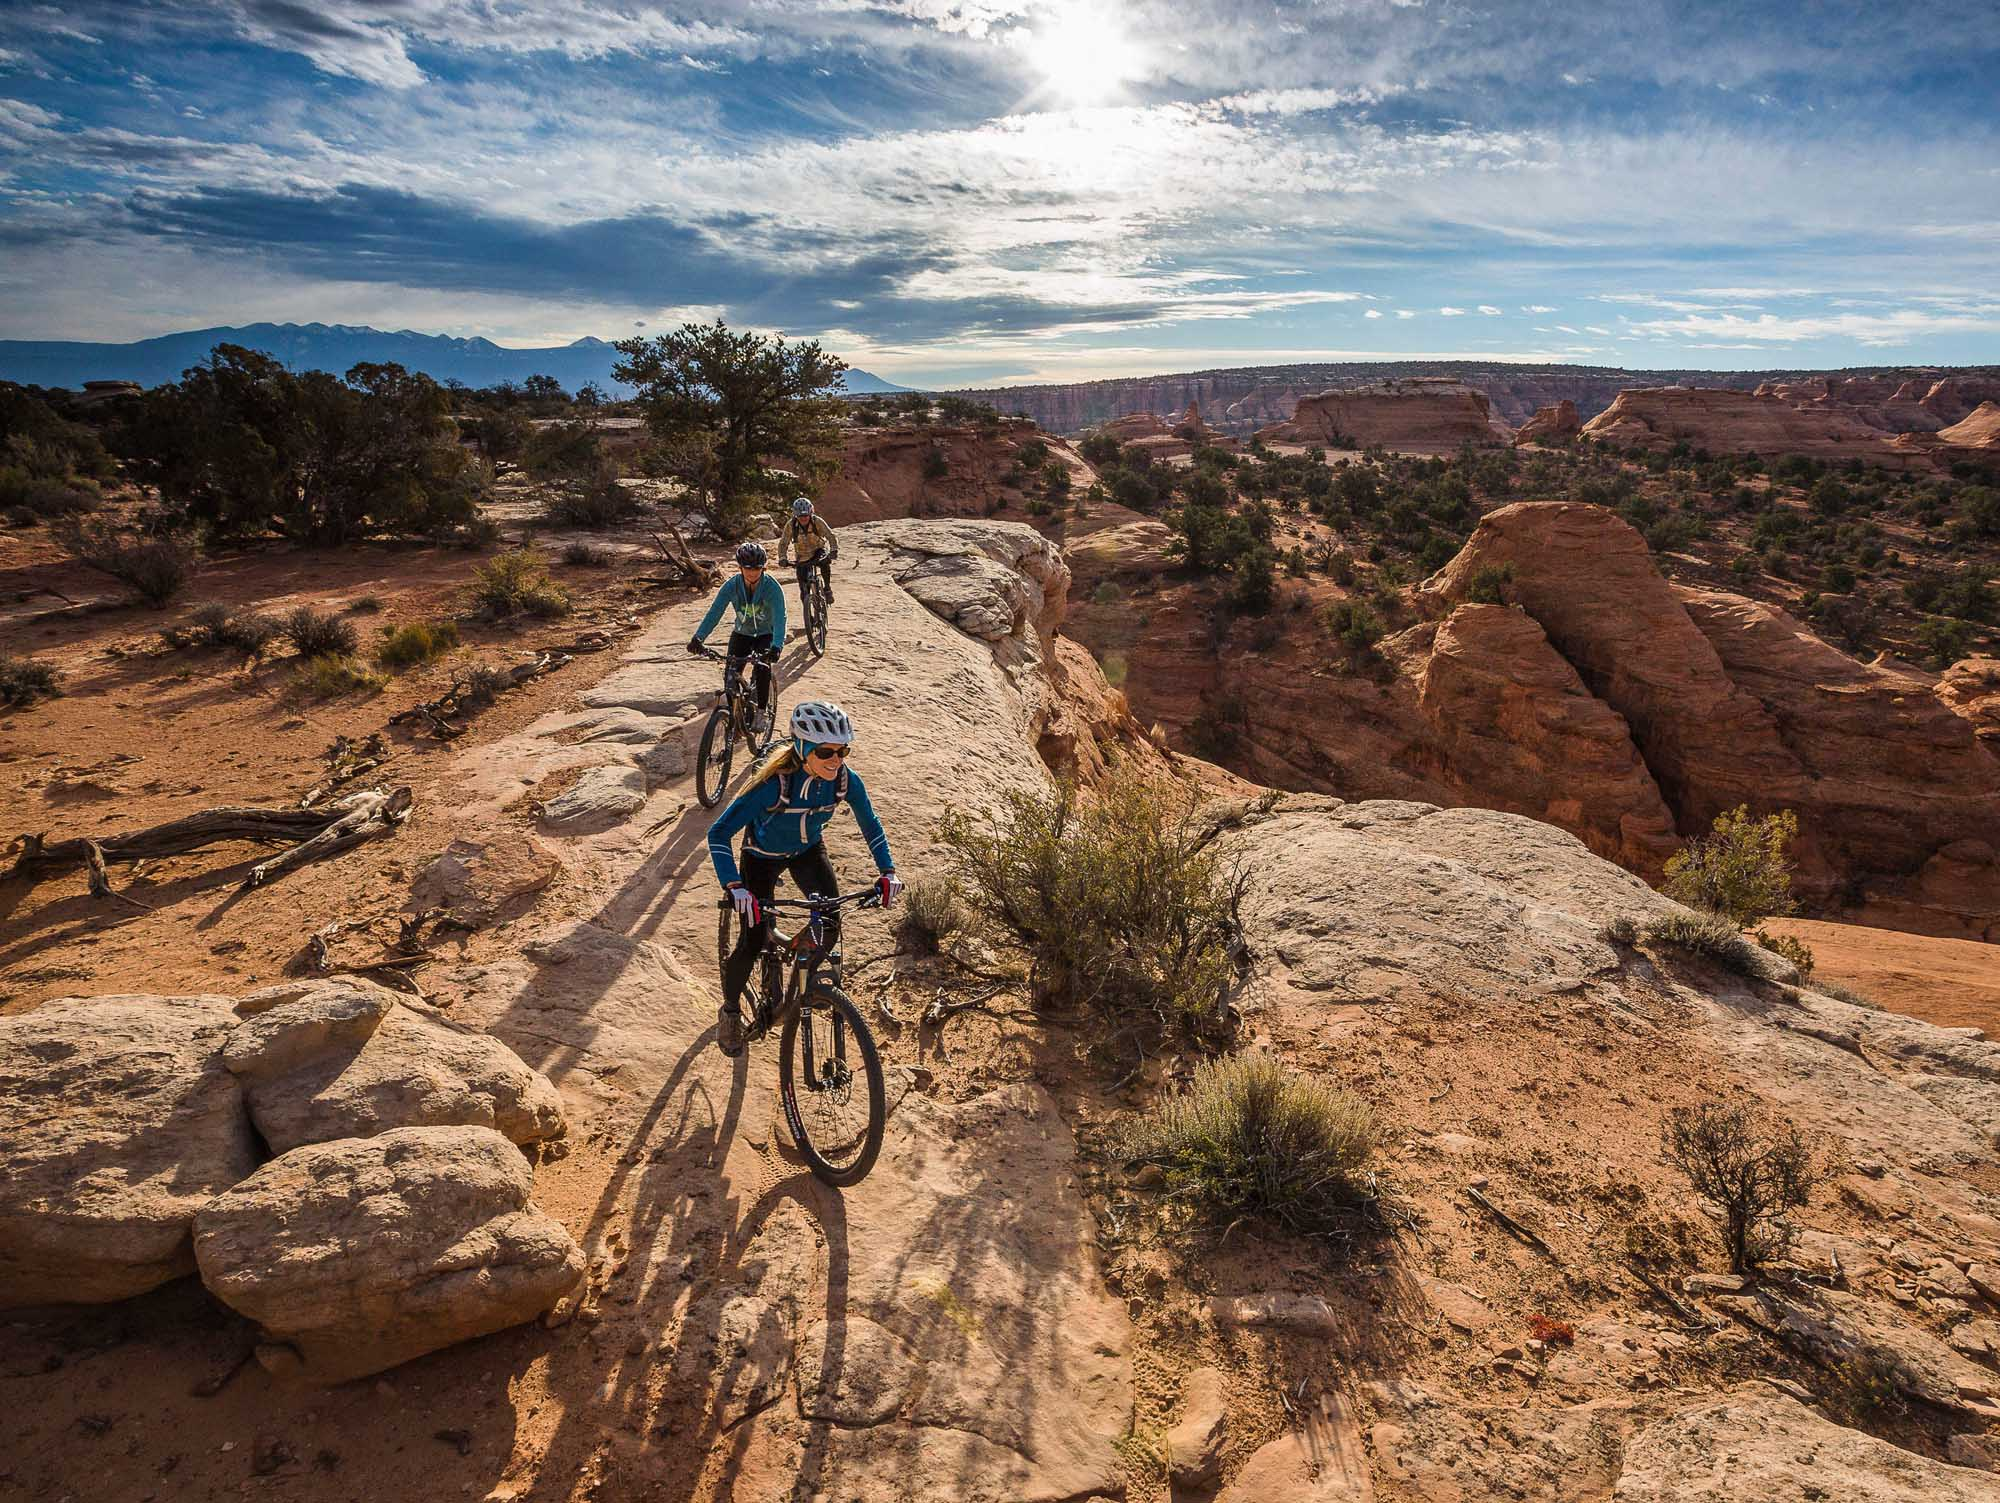 Mountainbiking auf dem Magnificent Seven Trail in Moab. – Foto: Rim Tours